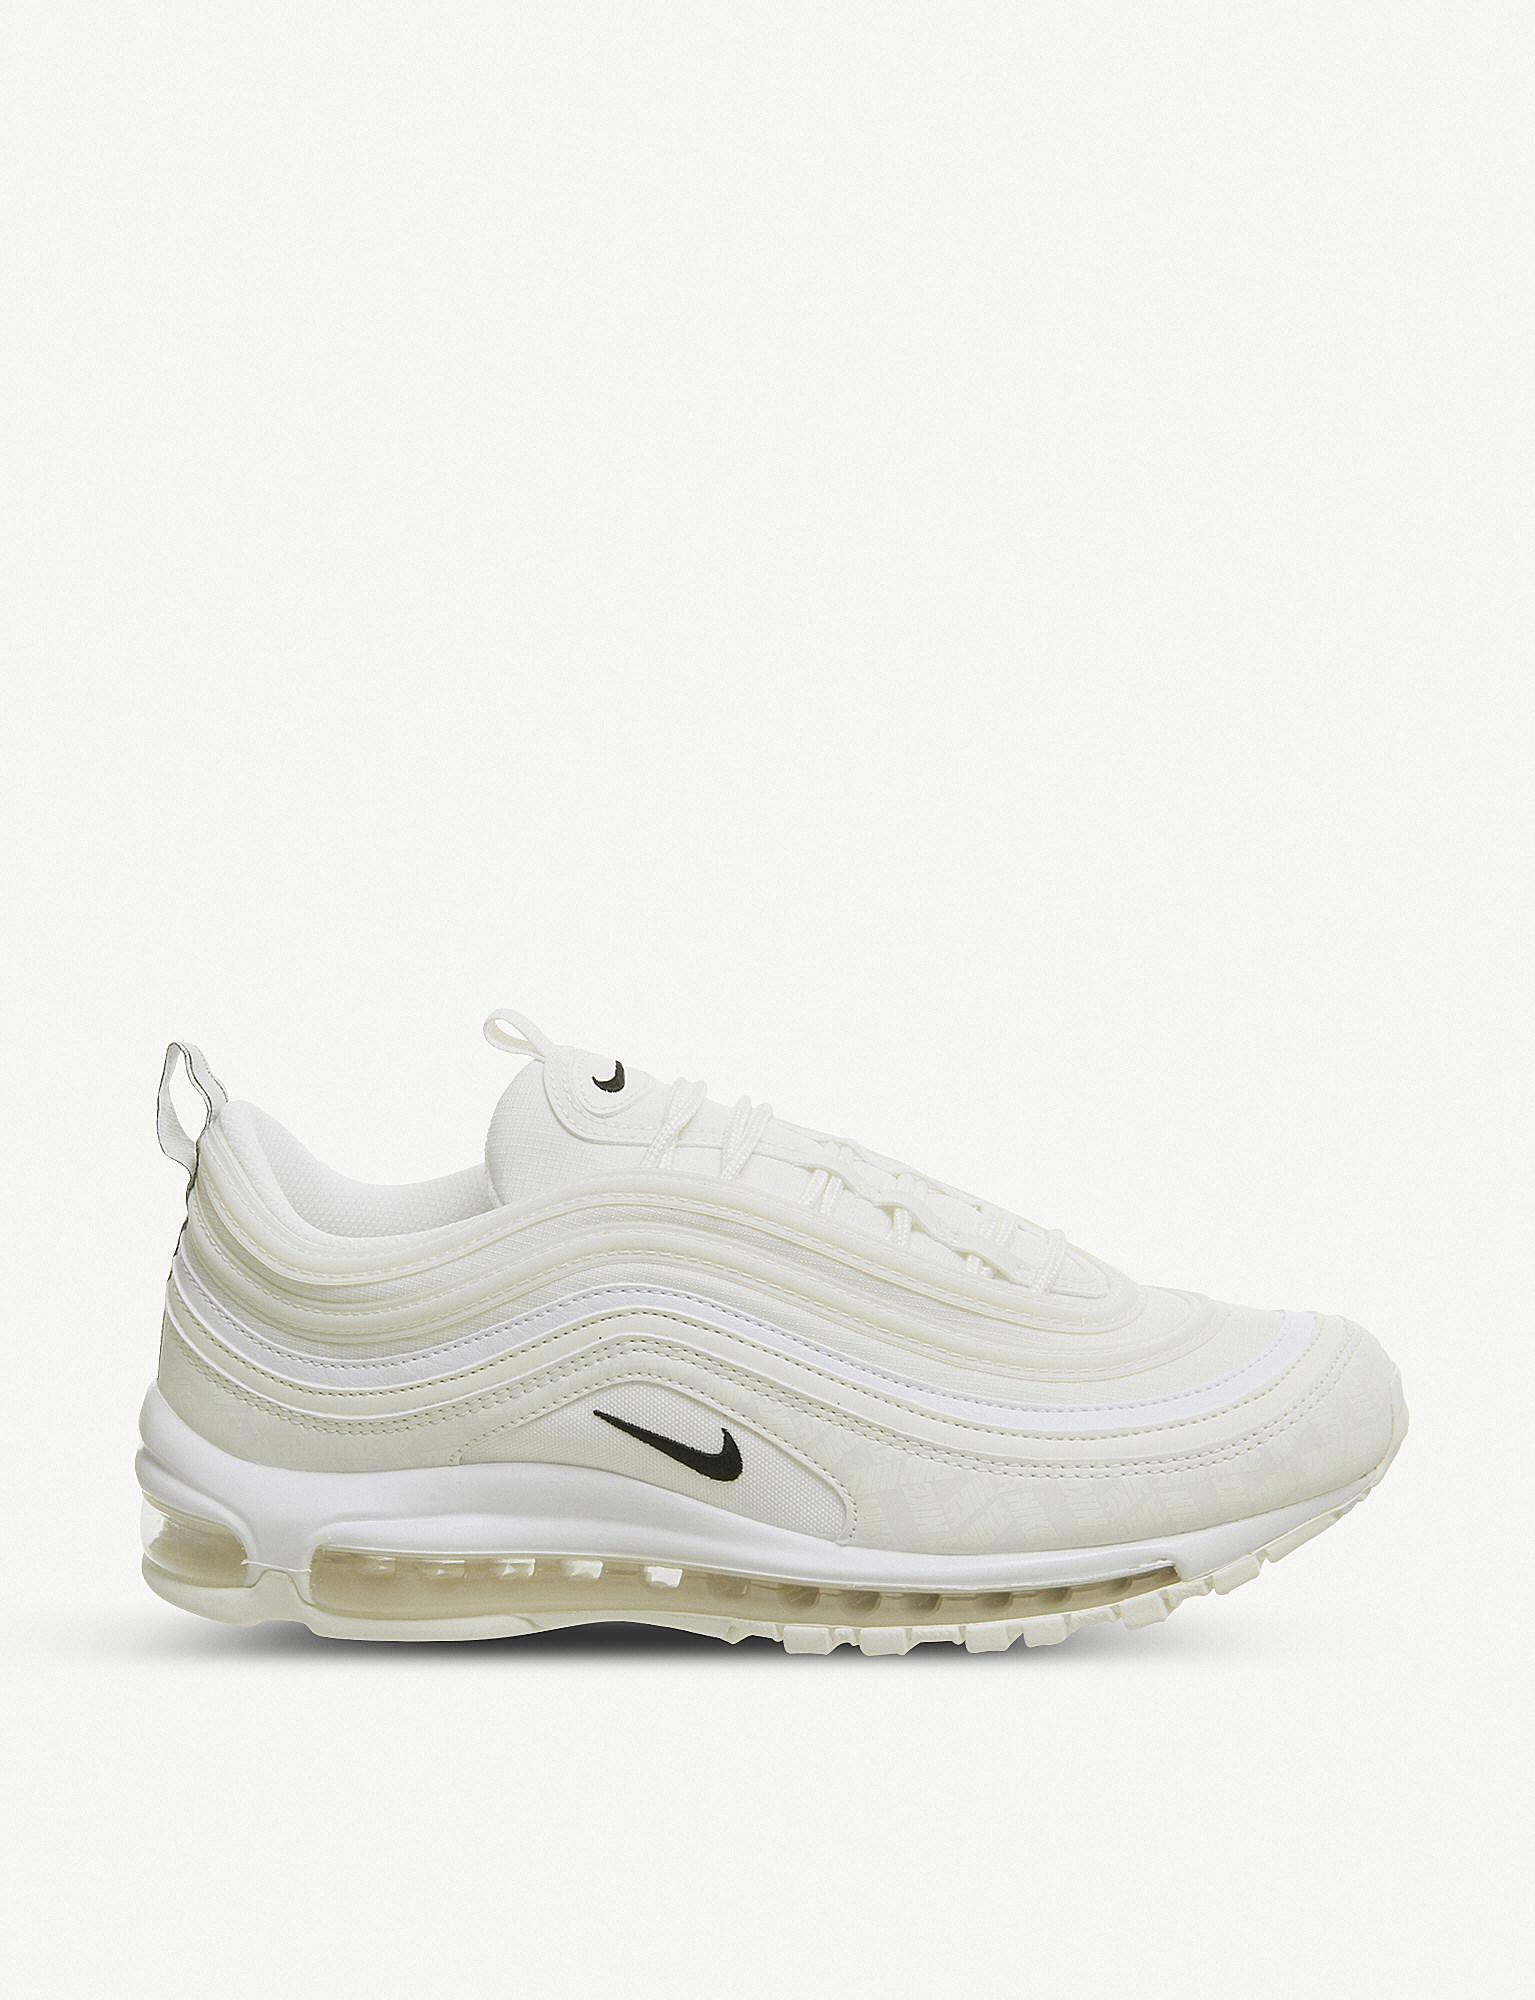 Nike Air Max 97 Leather And Mesh Trainers in White for Men - Lyst 764b30123